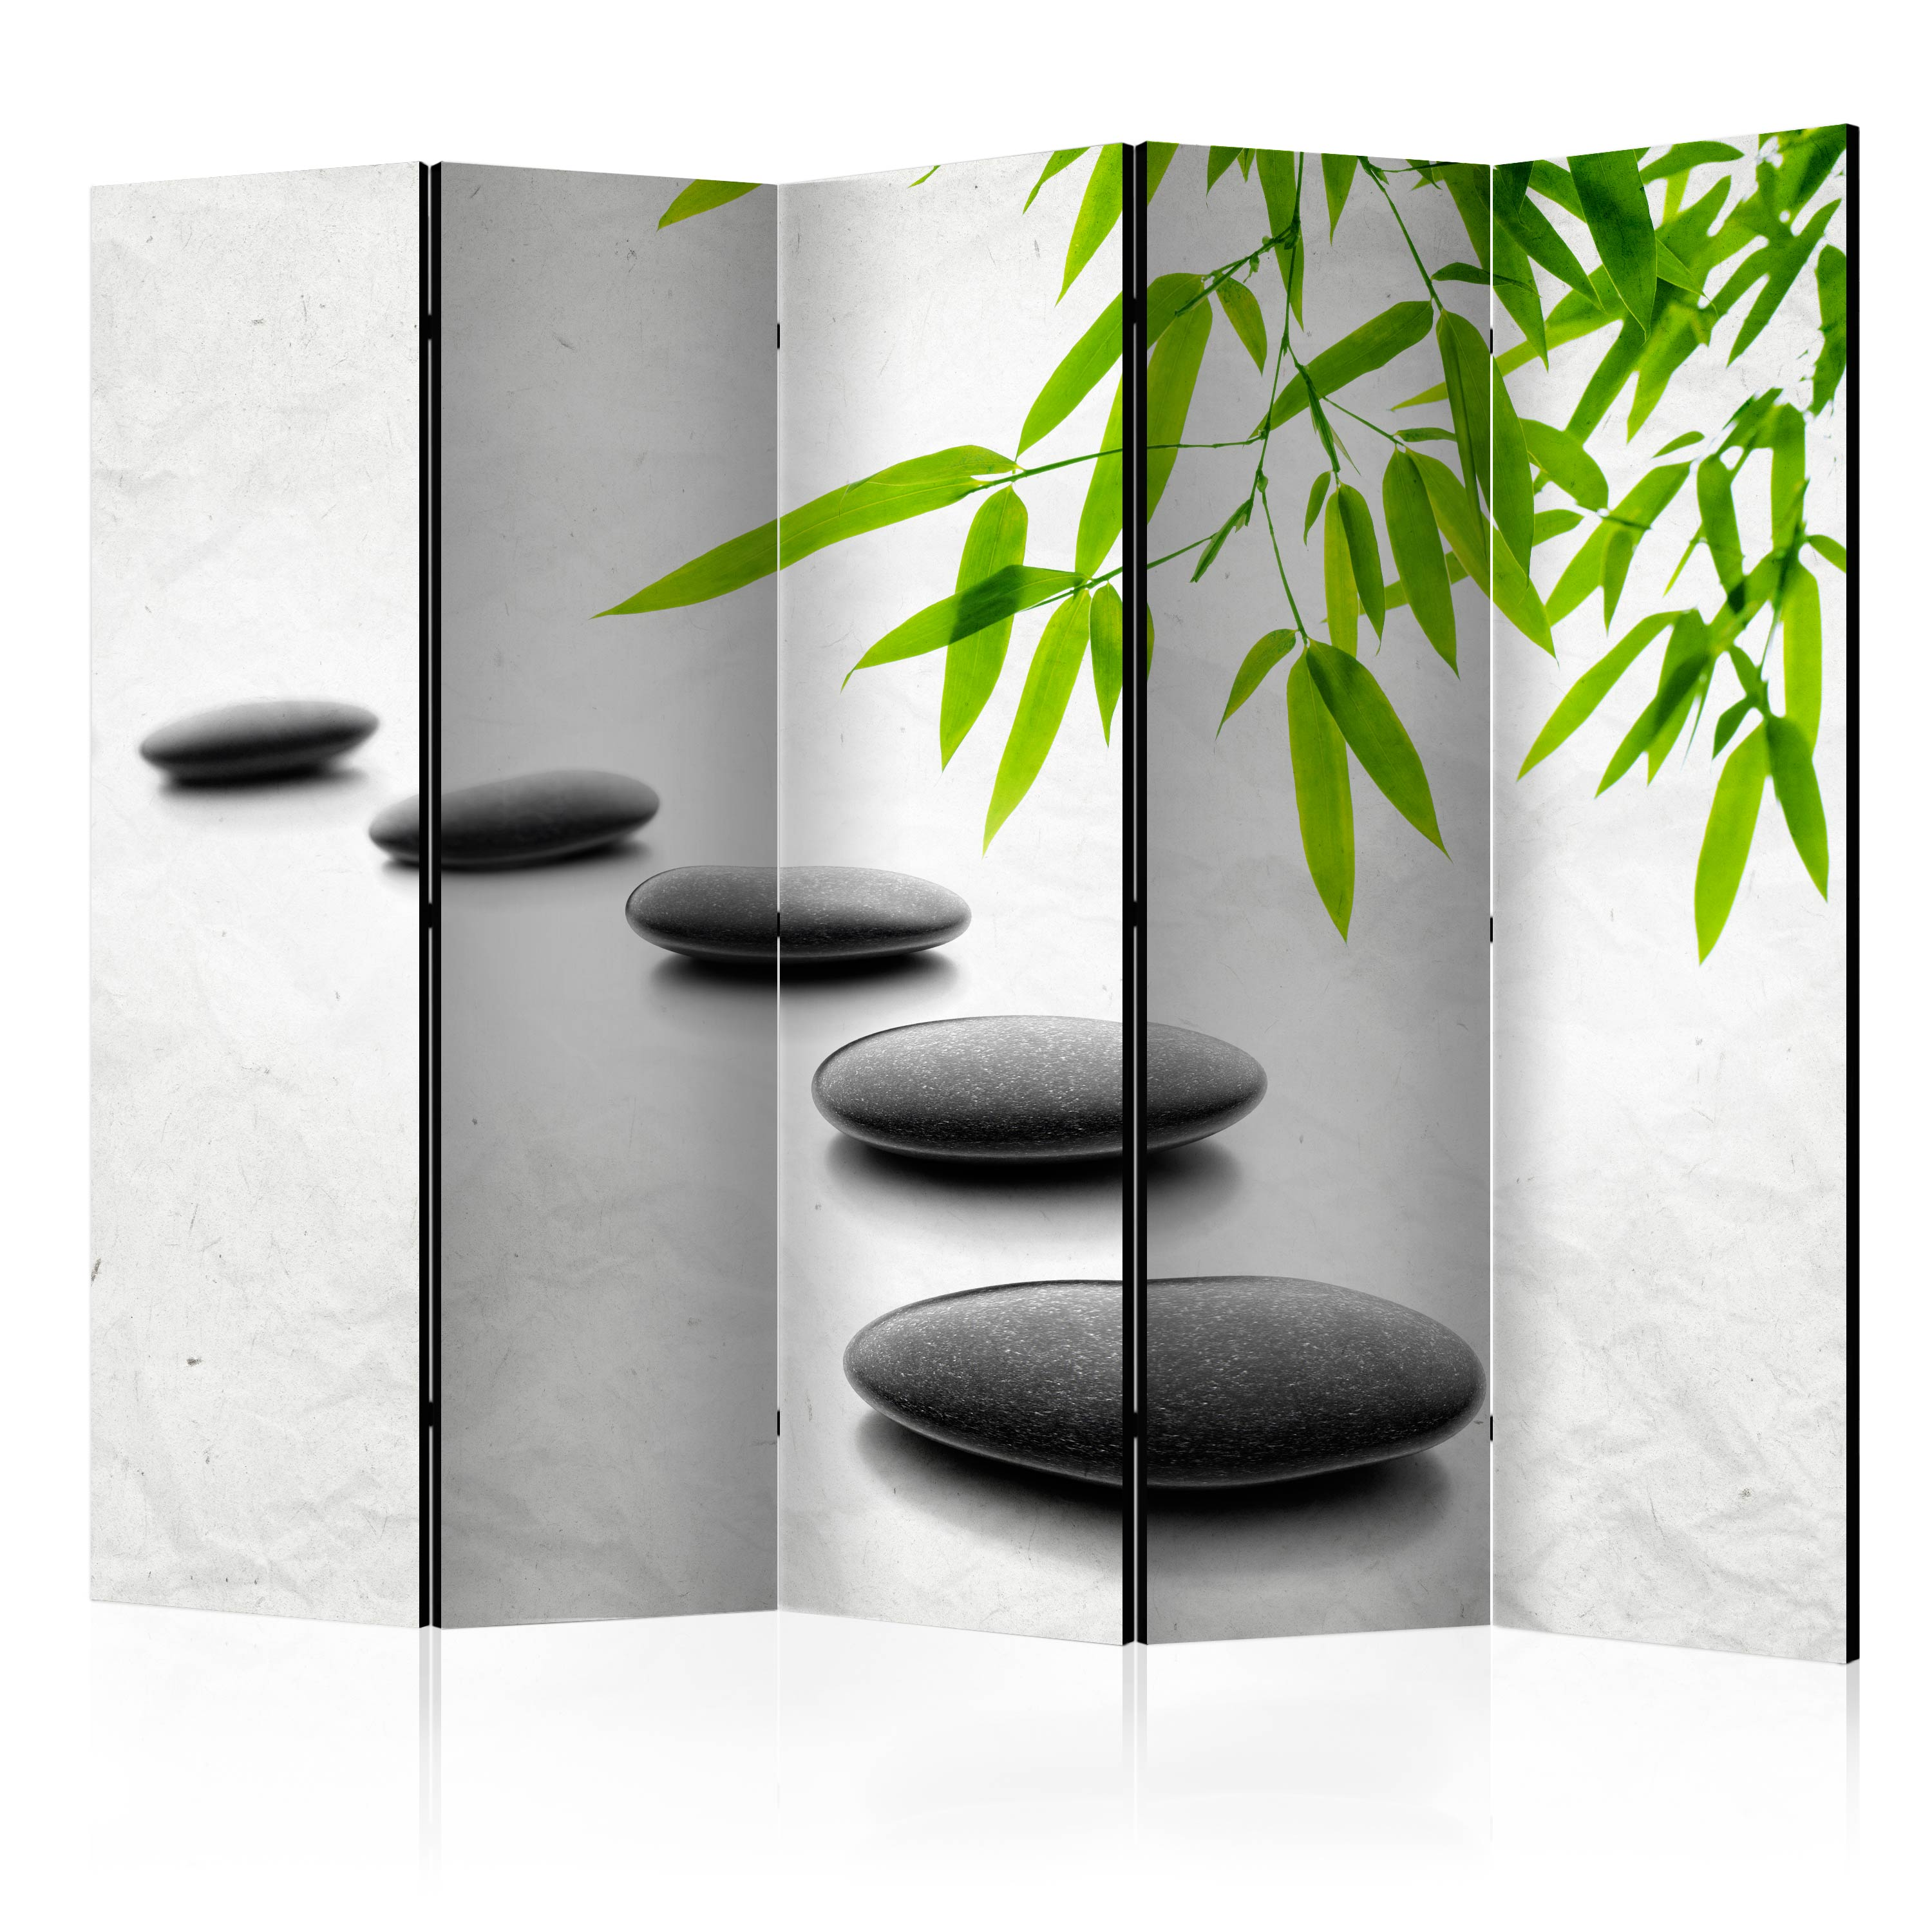 deko paravent raumteiler trennwand spa zen natur steine 10 varianten 2 formate ebay. Black Bedroom Furniture Sets. Home Design Ideas